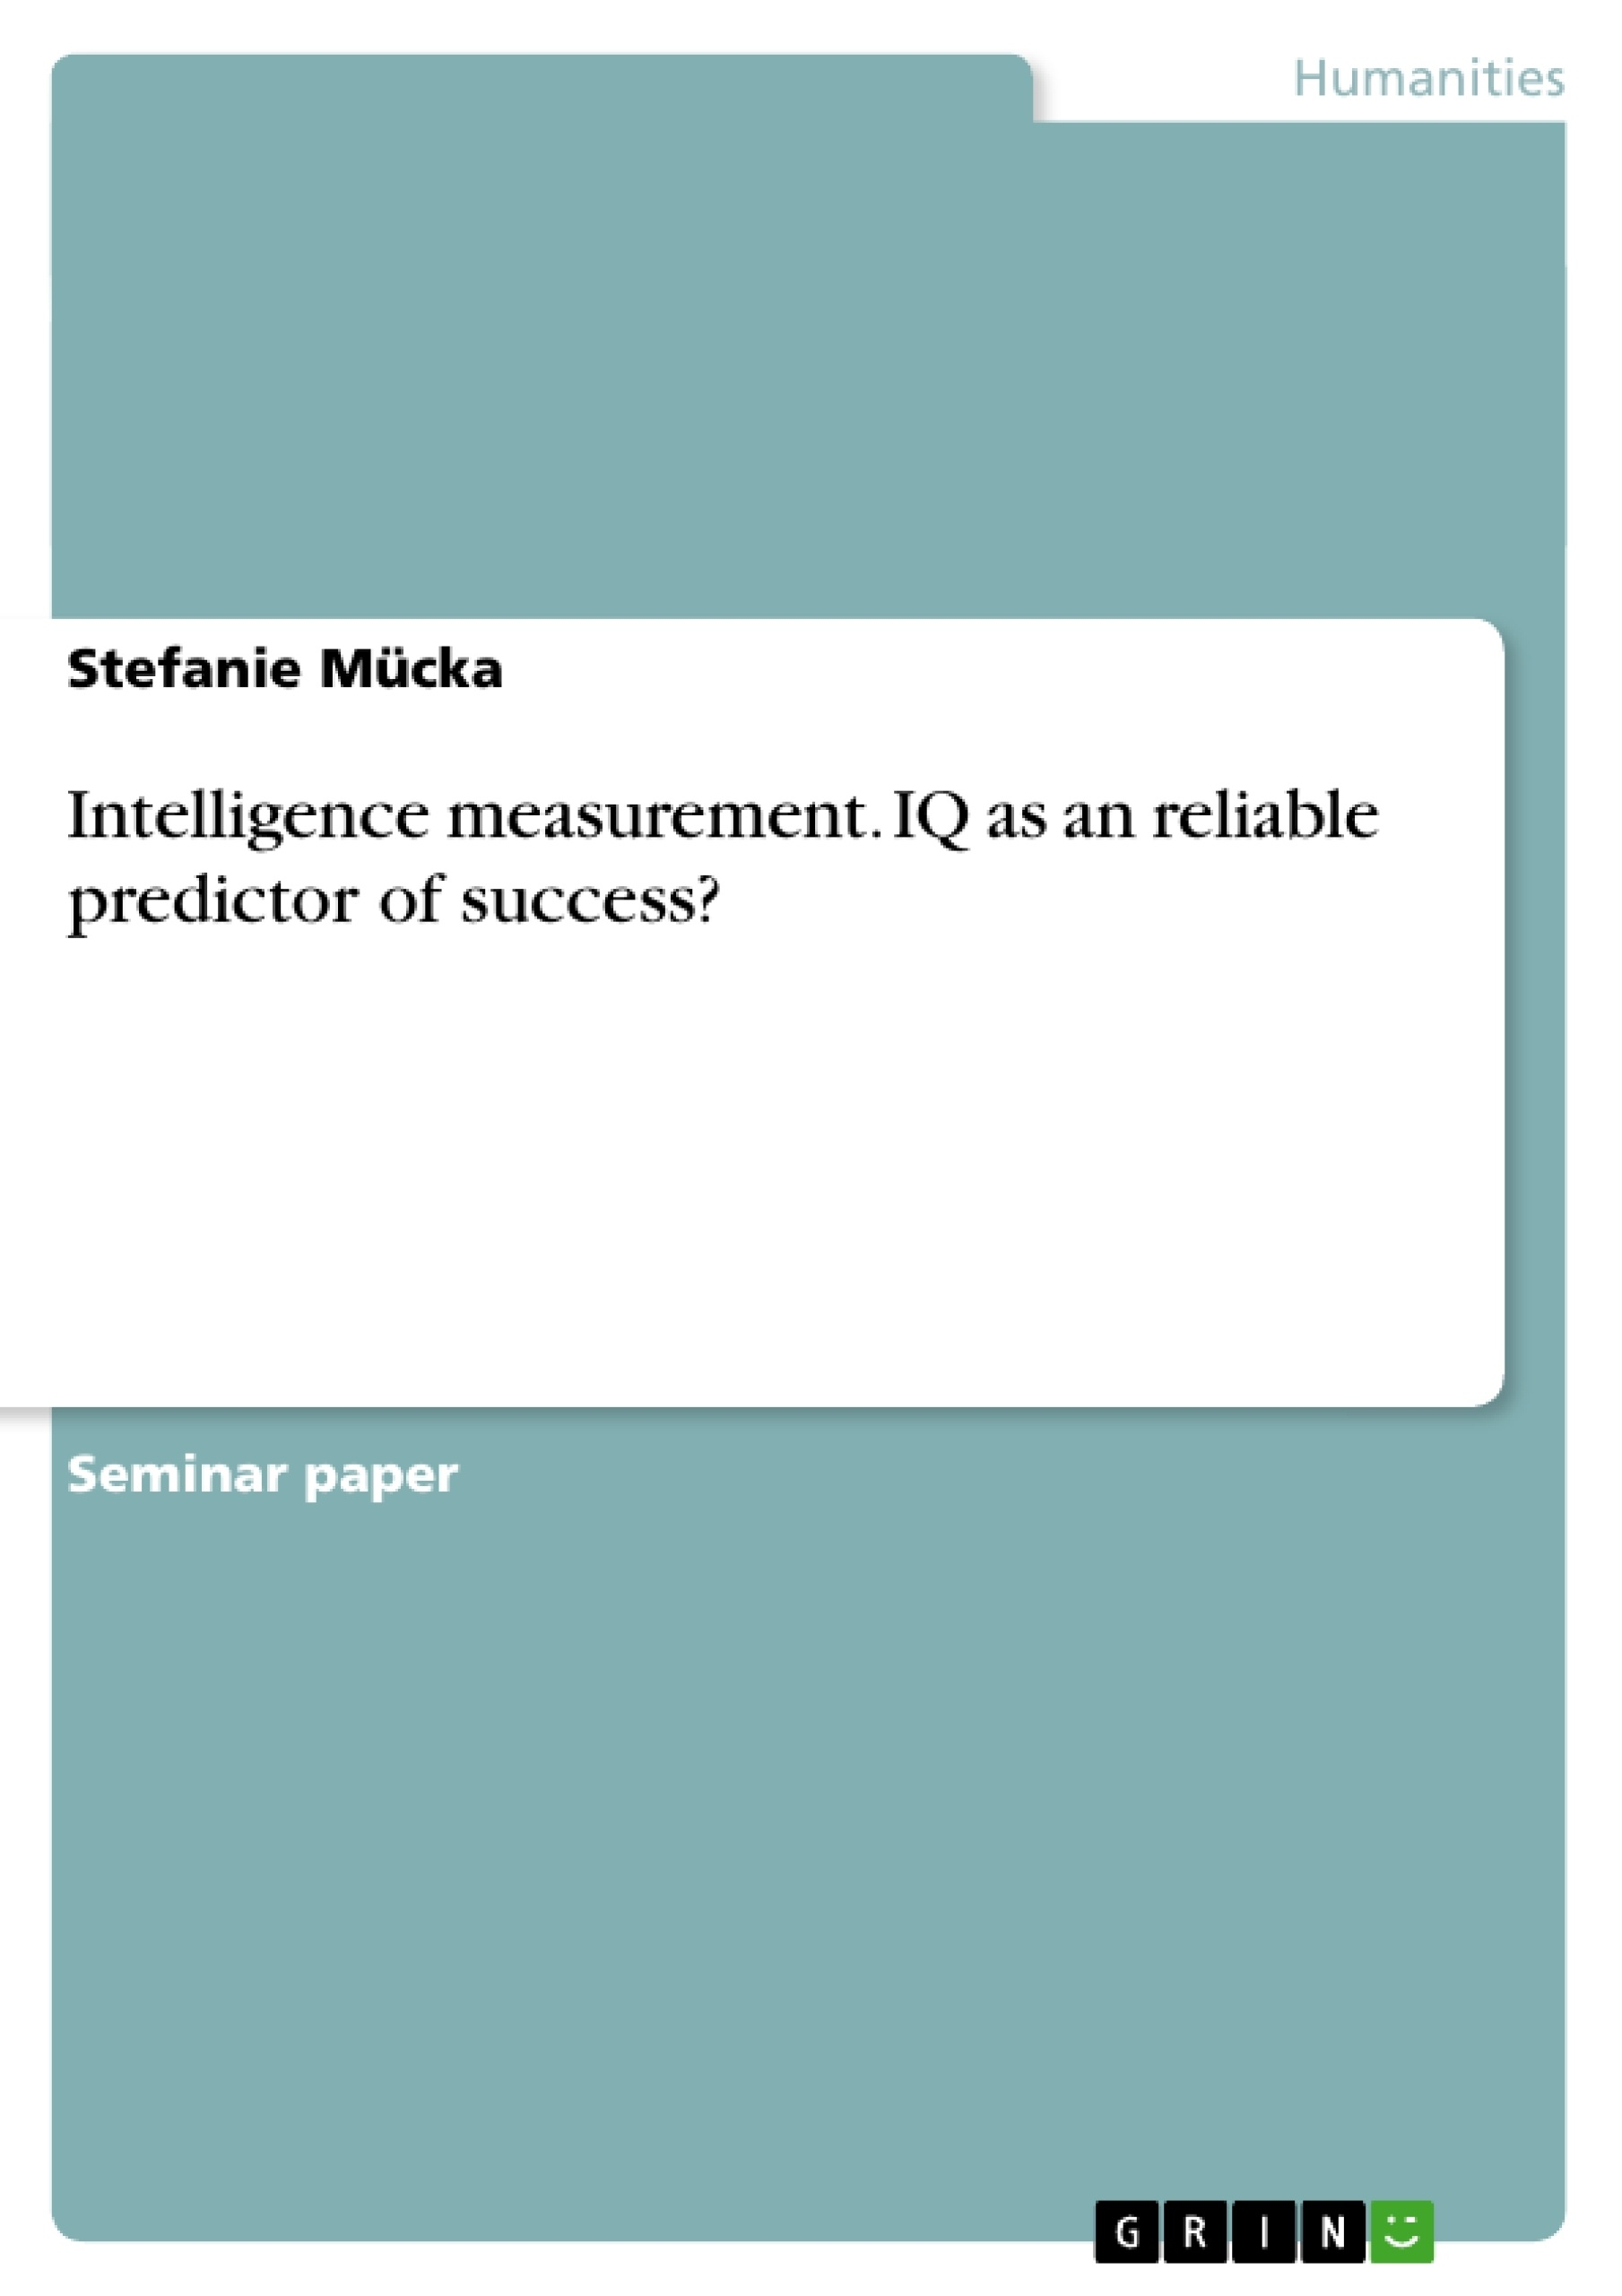 Title: Intelligence measurement. IQ as an reliable predictor of success?